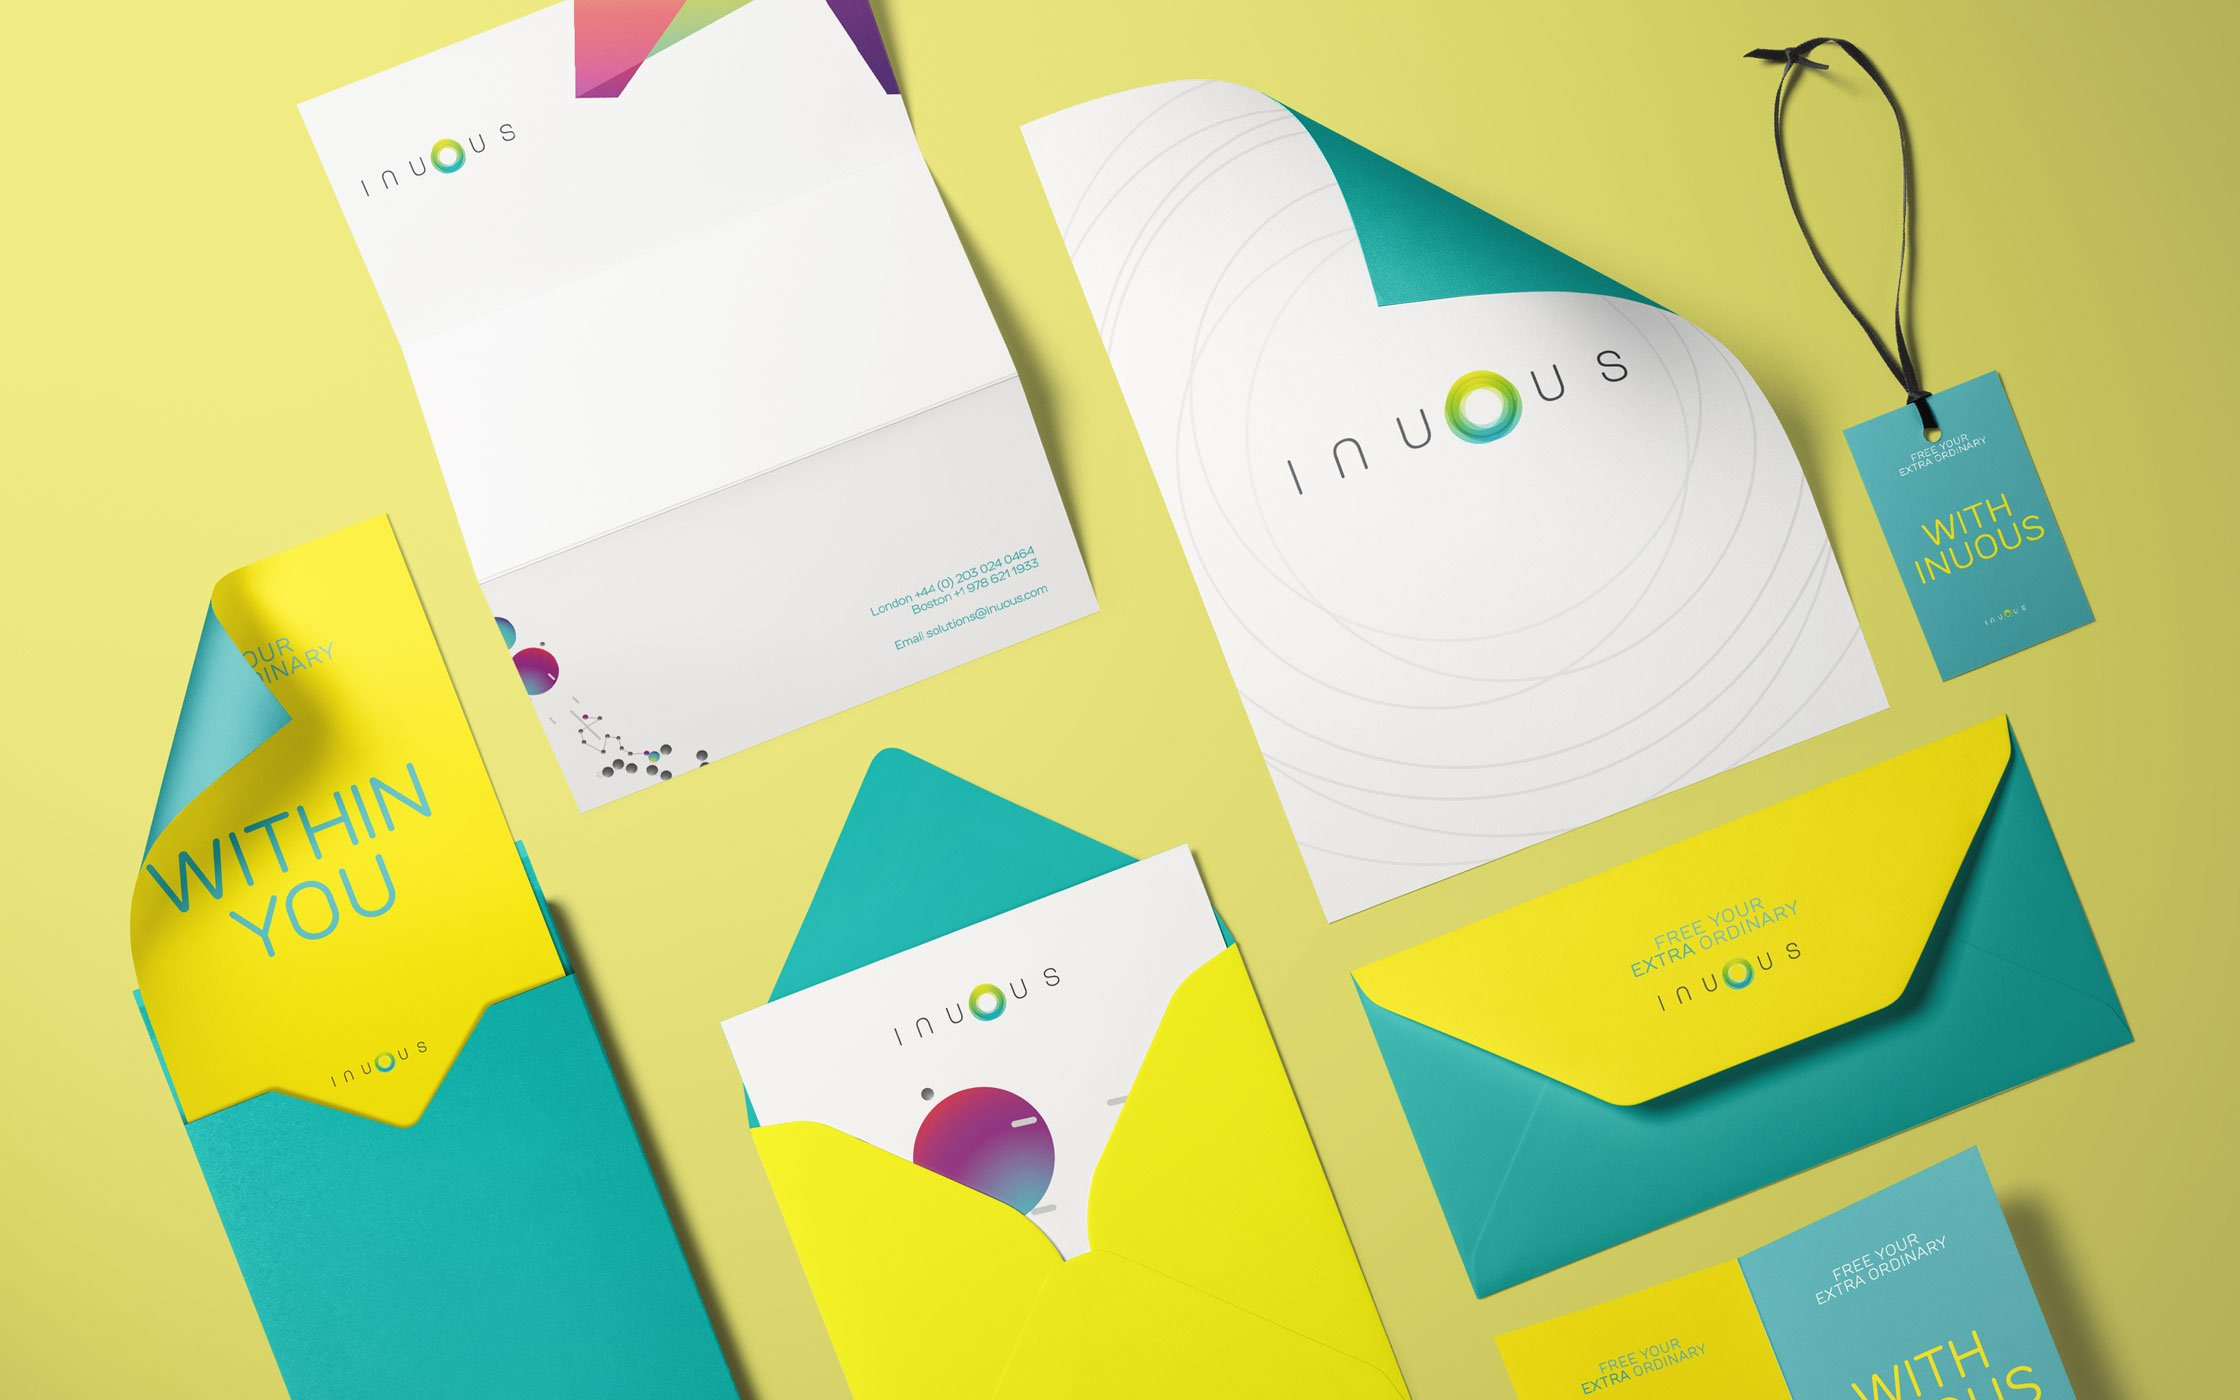 Inuous printed collateral